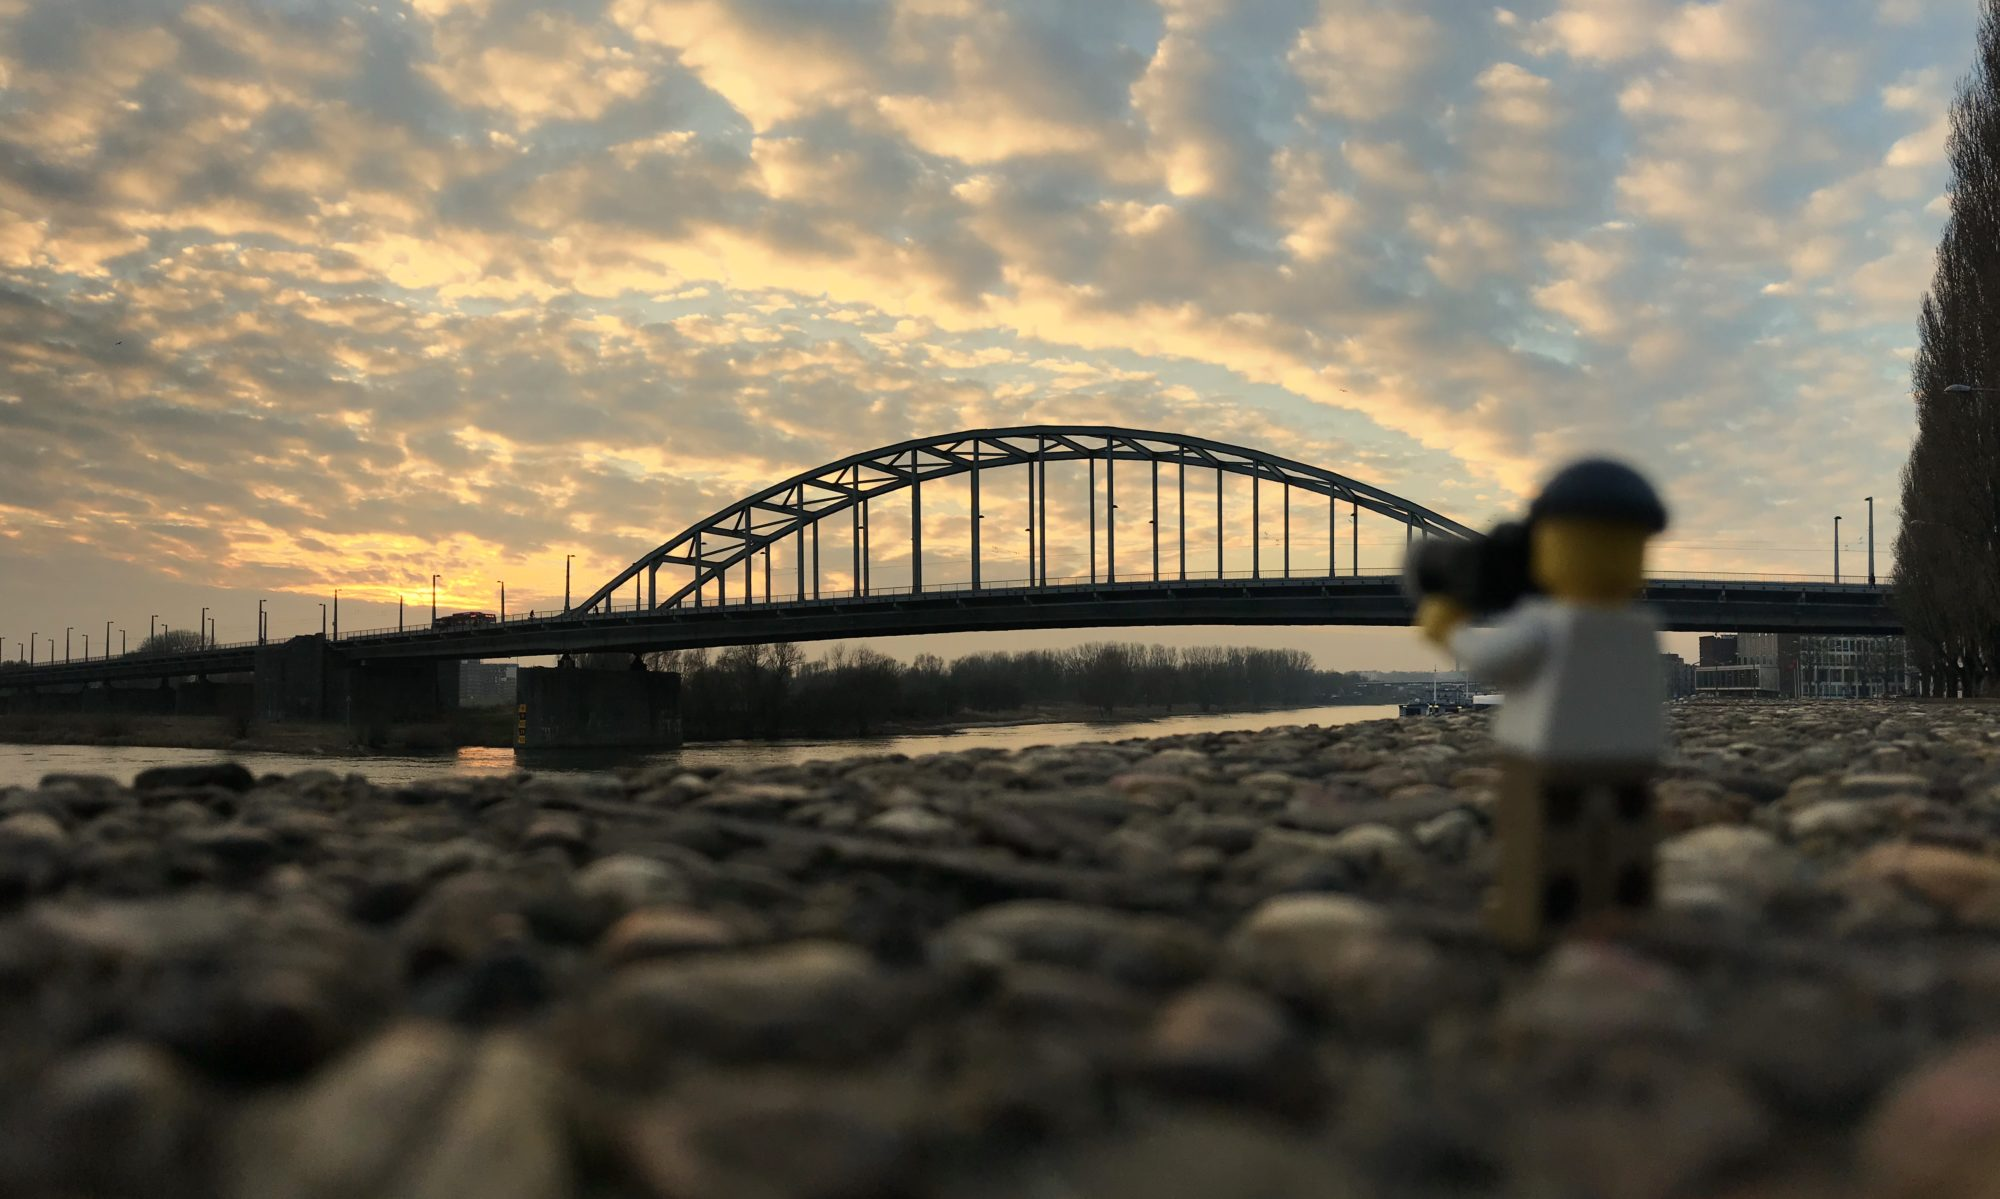 Bricks of Arnhem